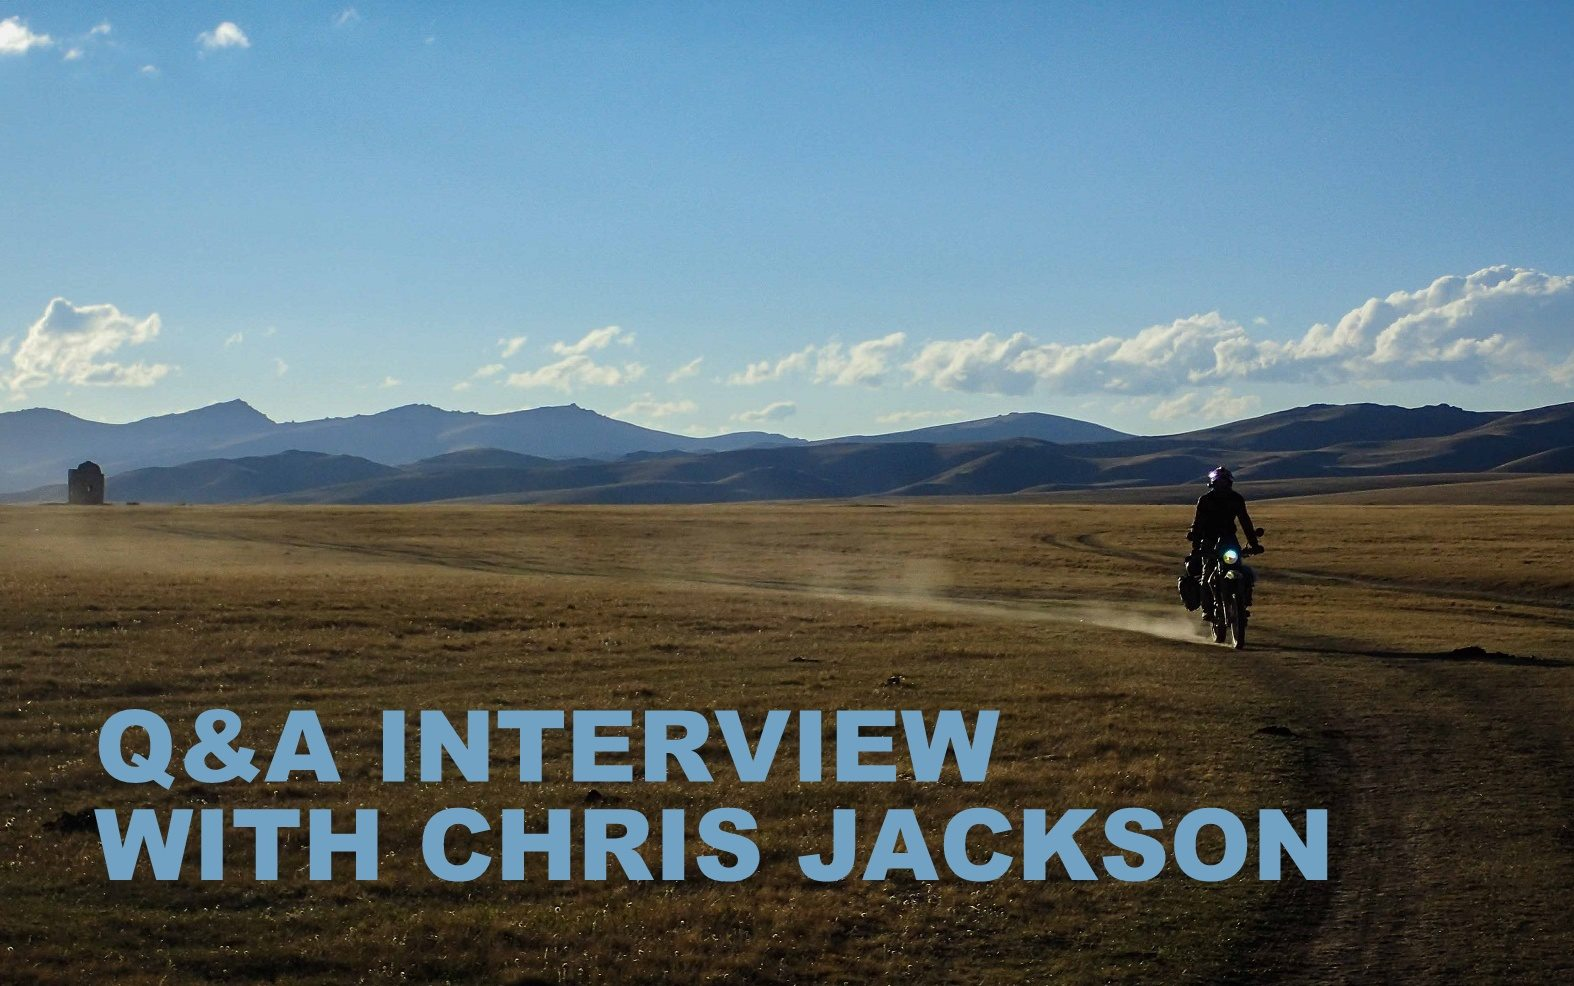 Q&A interview with Chris Jackson